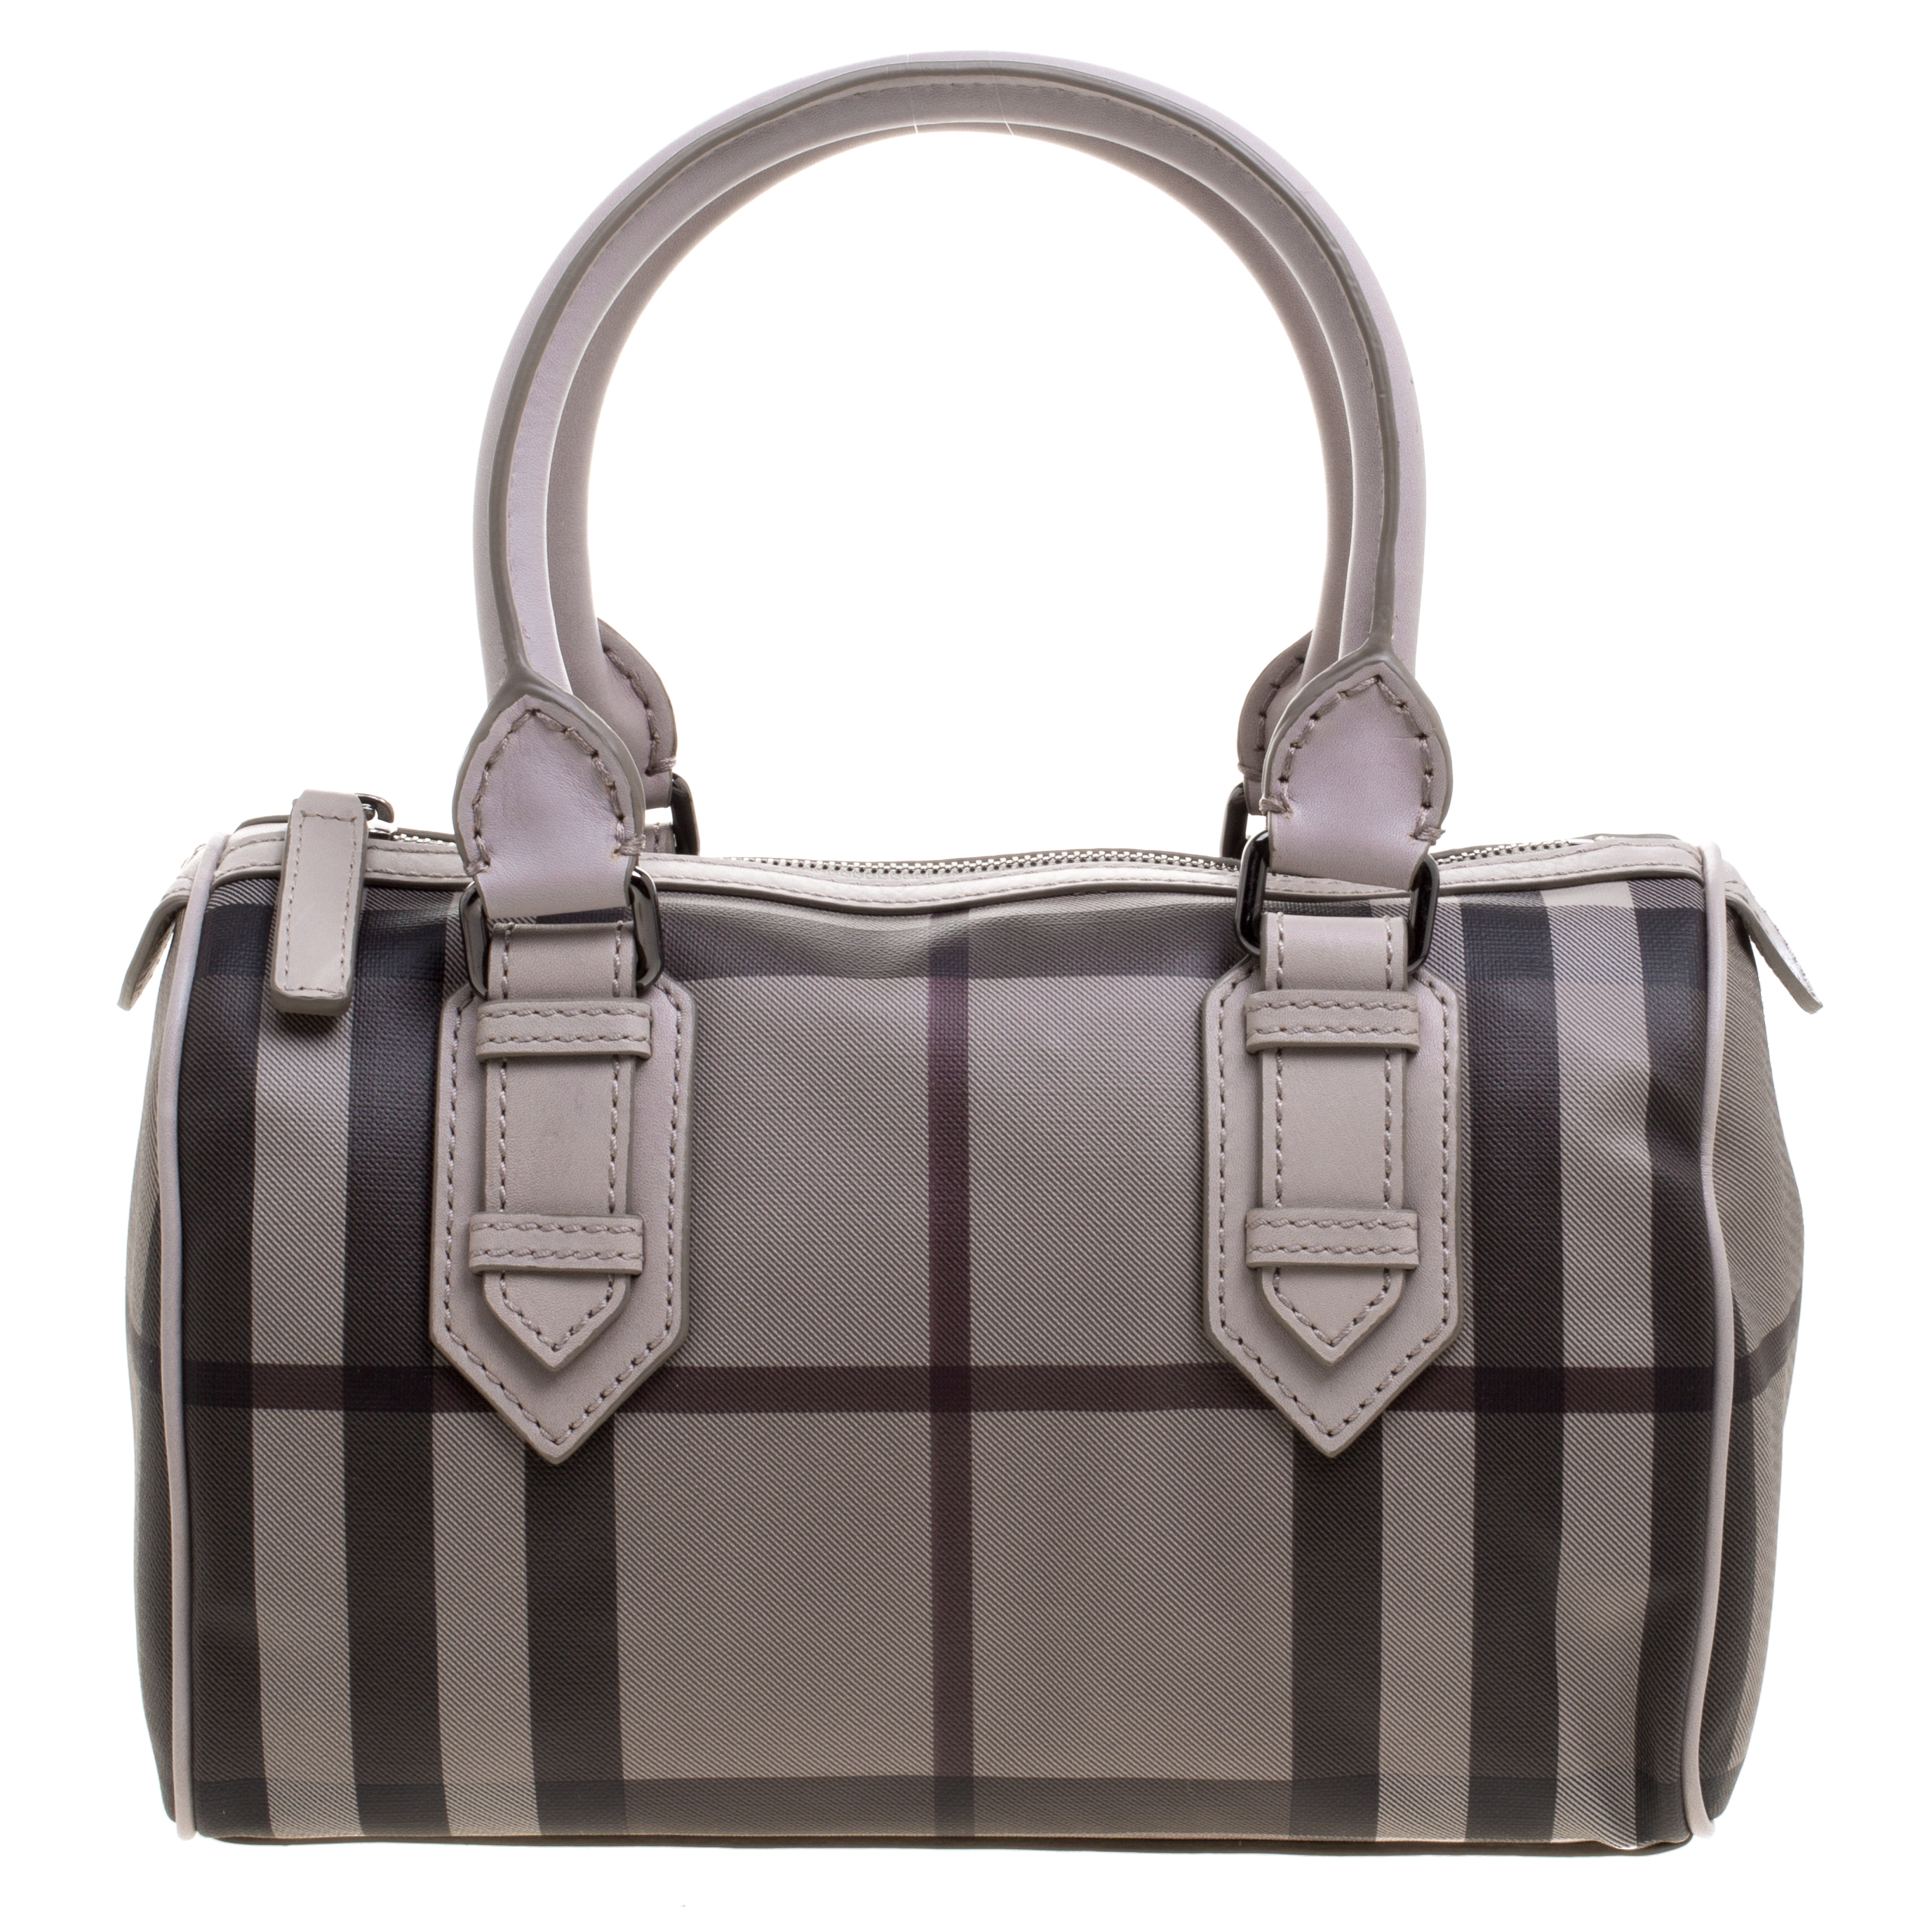 90542de4ec8c Burberry Smoked Check Handbag - Handbag Photos Eleventyone.Org